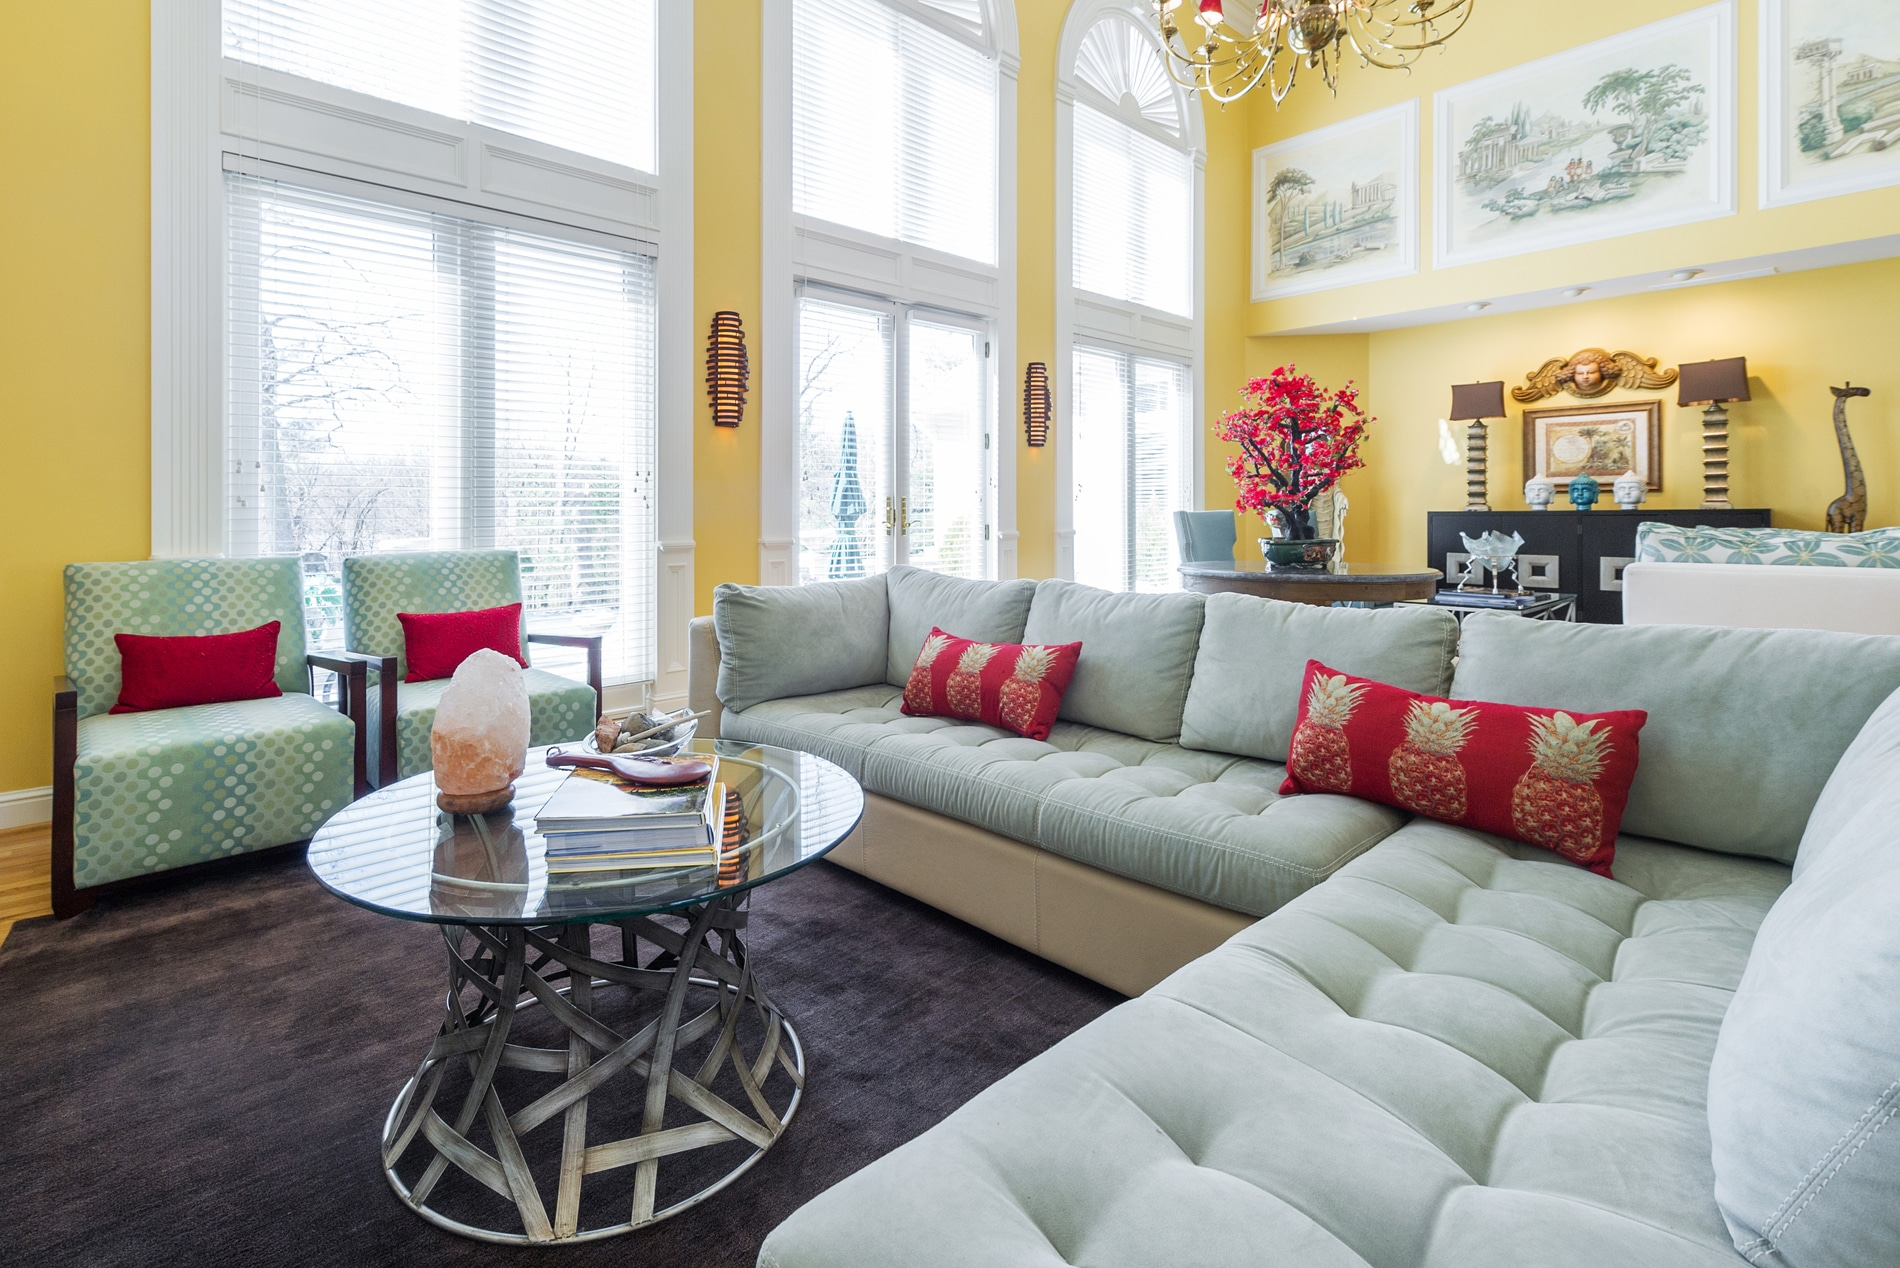 This Architecturally Traditional Home Was Transformed Into An Asian  Showplace. The Former Living And Dining Room Space Was Turned Into An  Entertainment Area ...